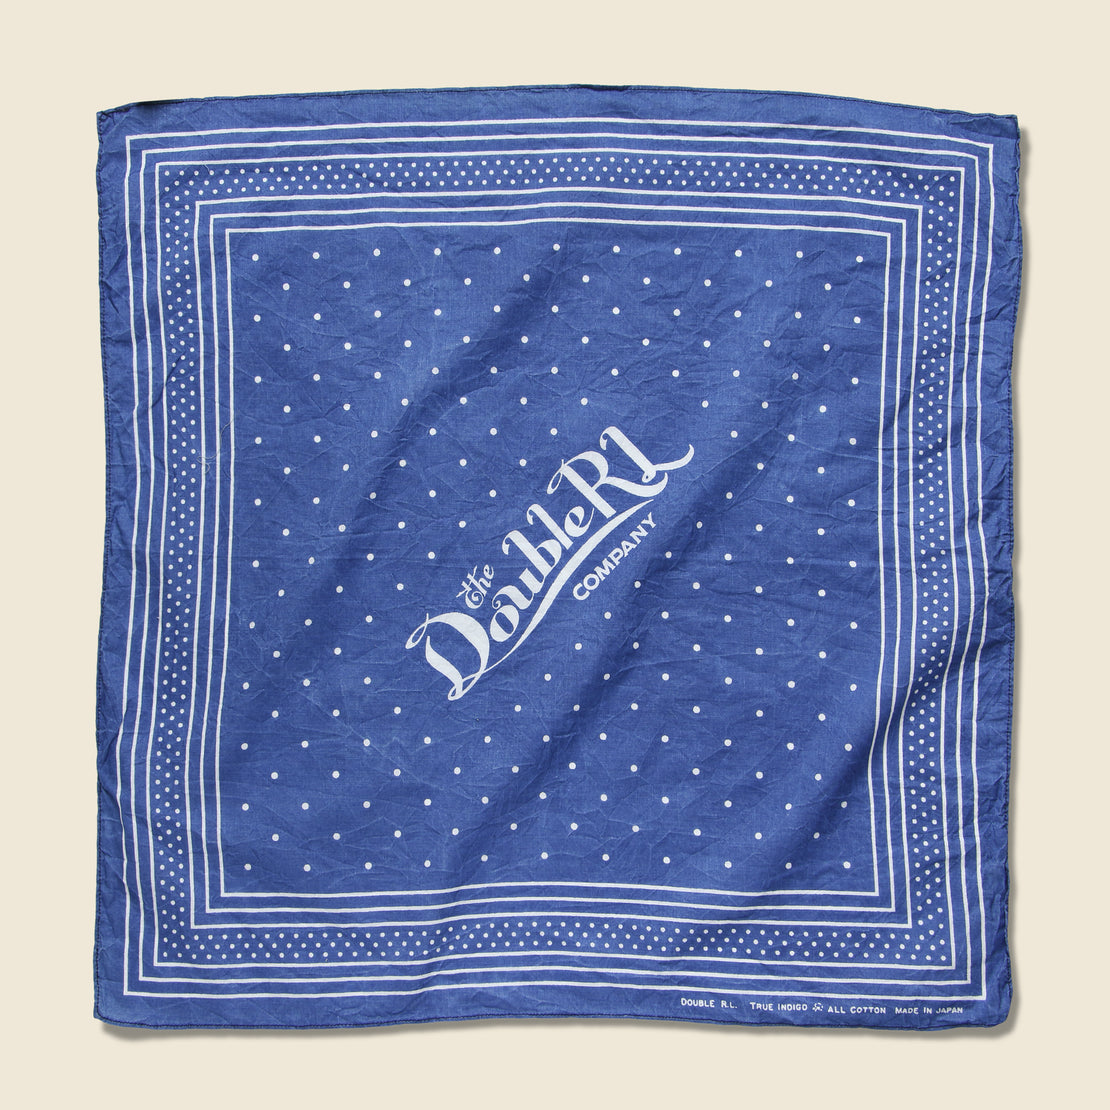 RRL Logo Bandana - Washed Blue Indigo